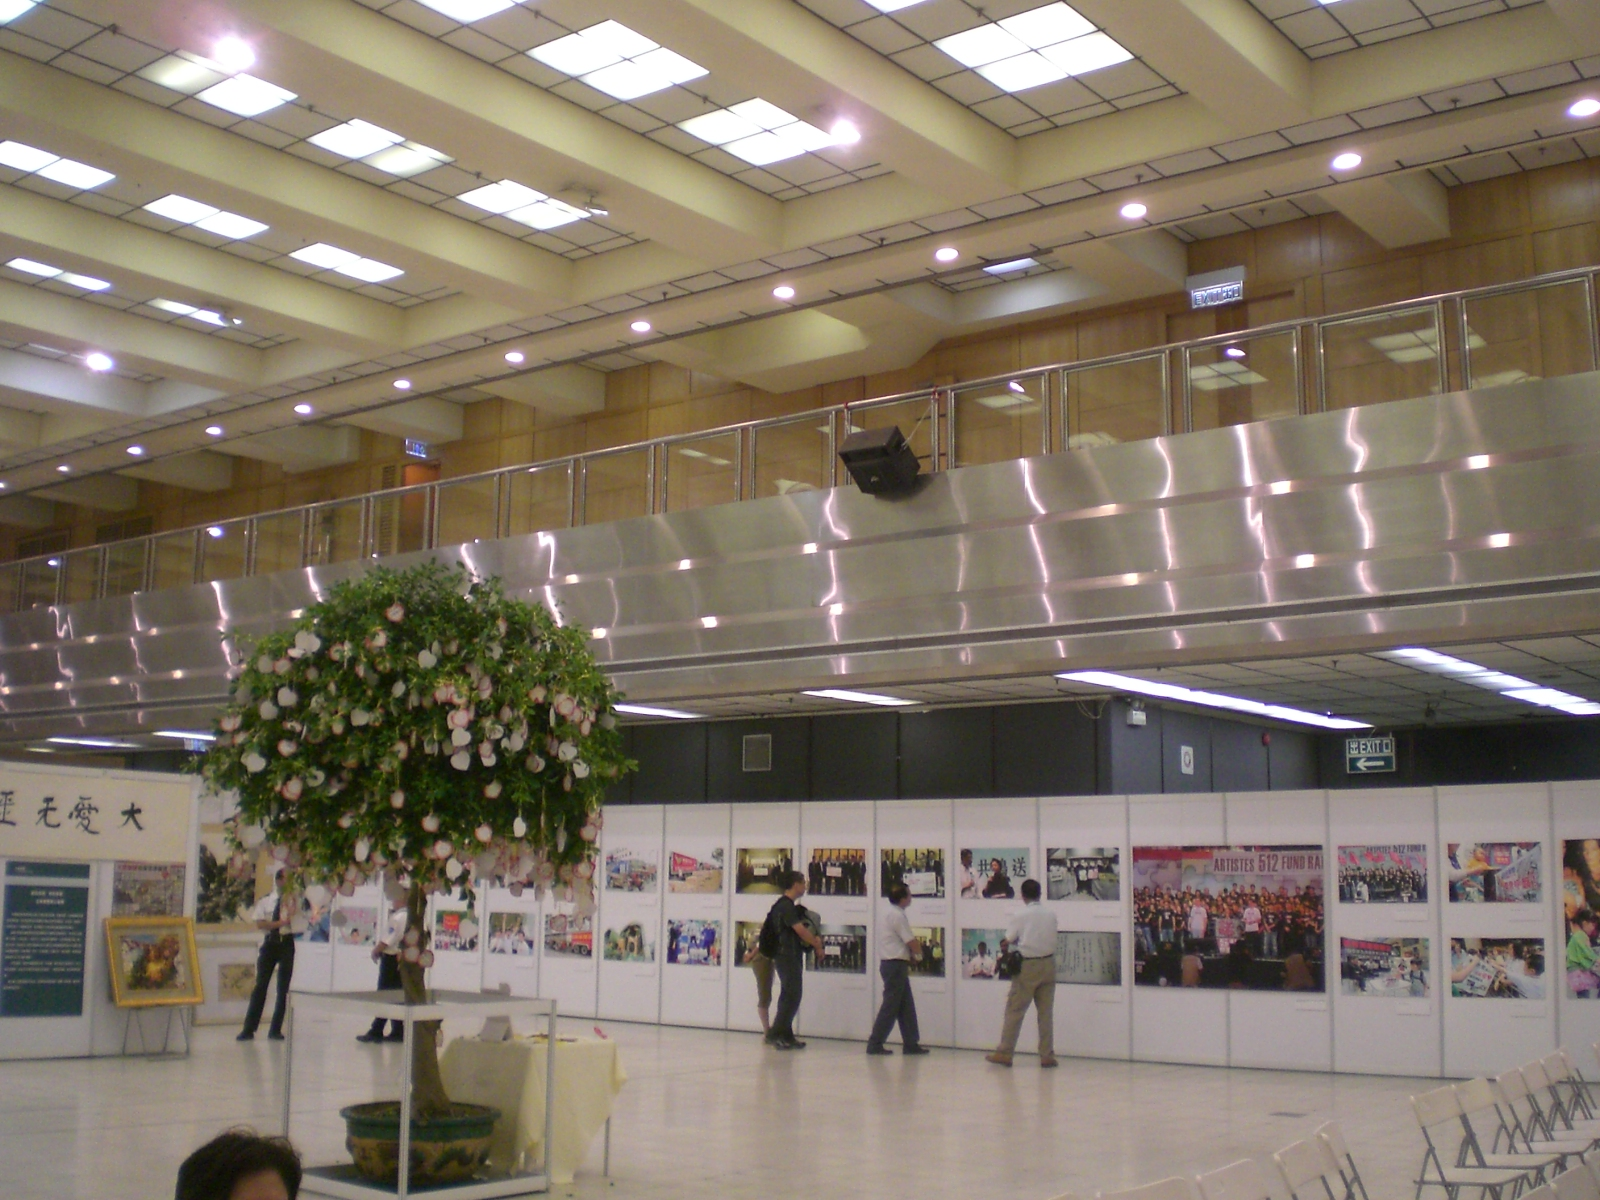 Exhibition in the center of city 2